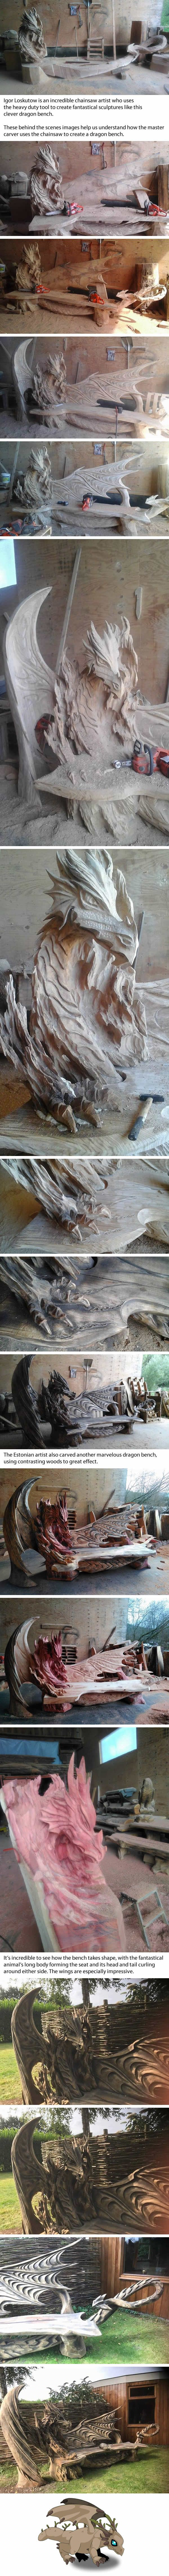 Estonian Artist Uses a Chainsaw to Carve a Fantastical Dragon Bench